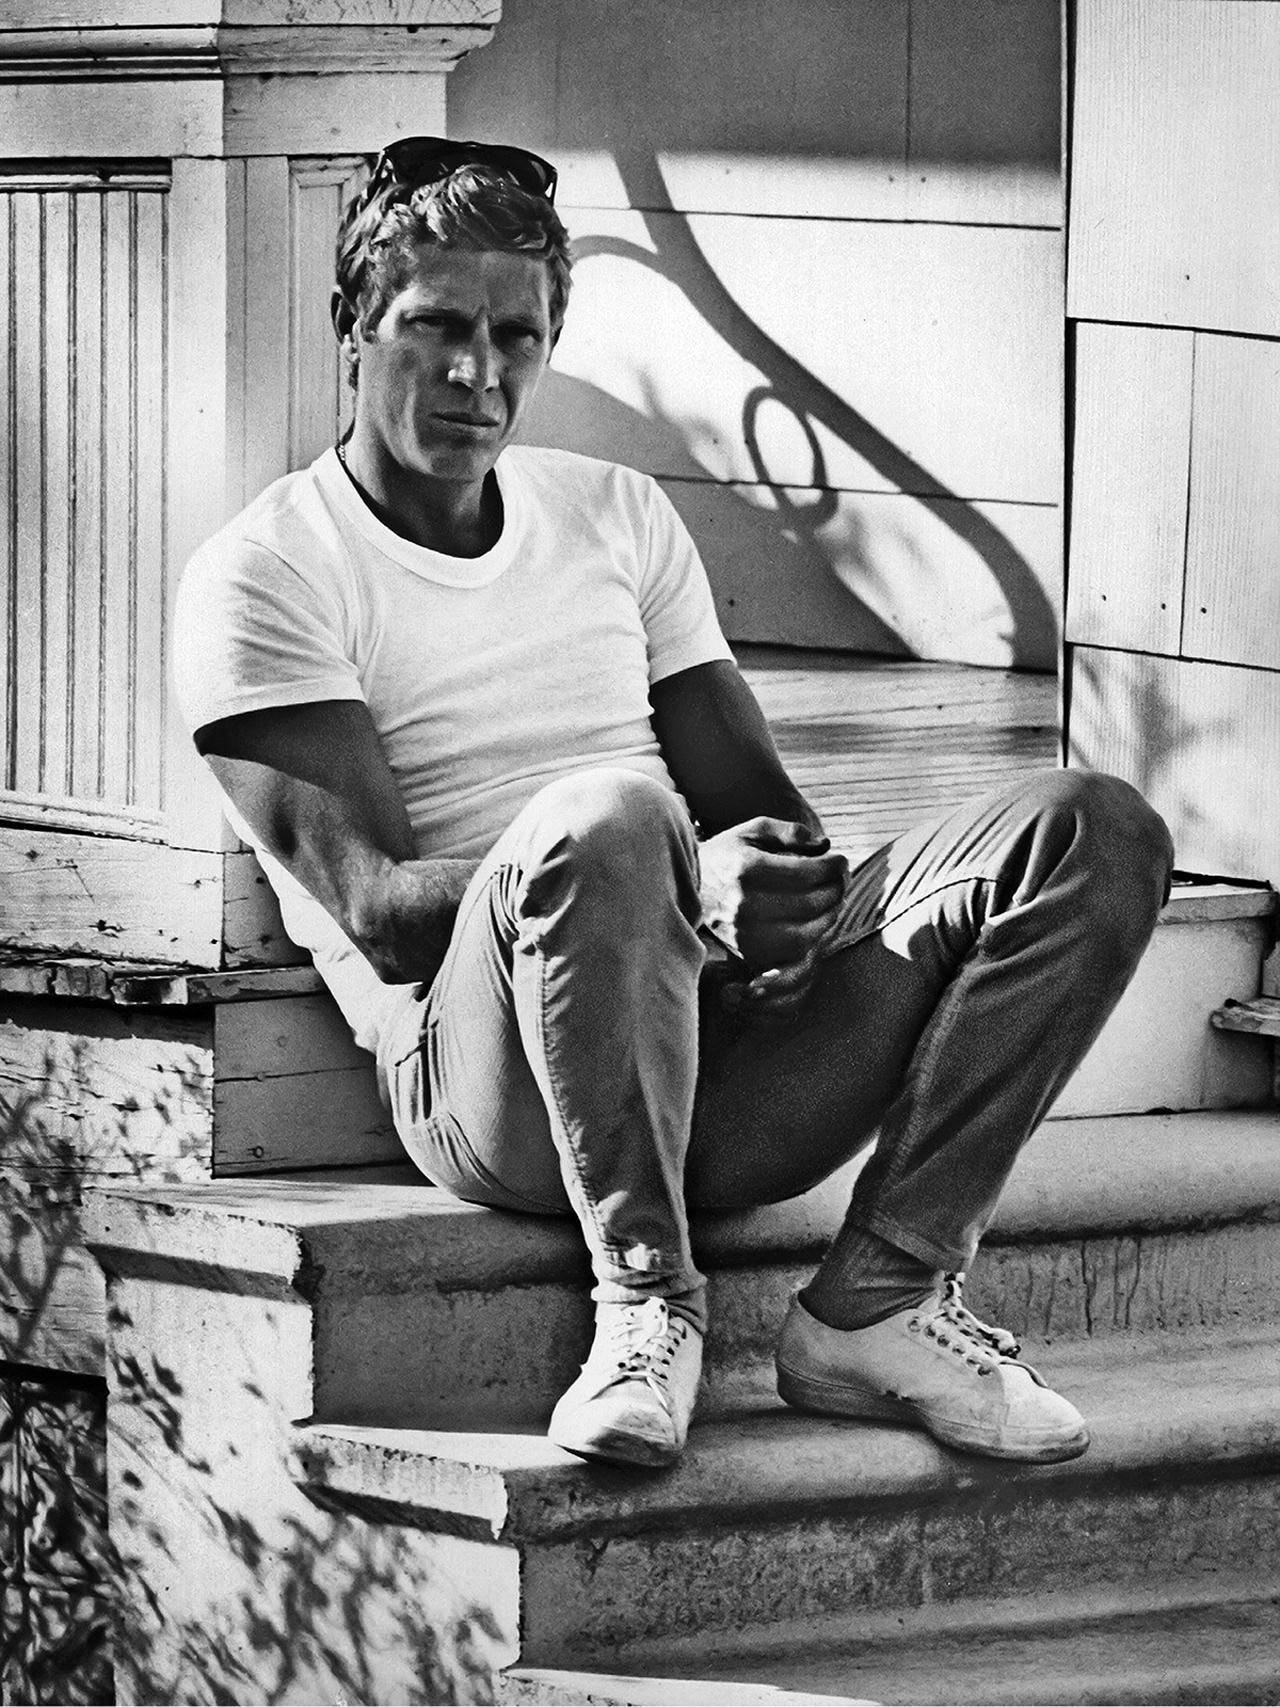 Steve McQueen wearing white t-shirt jeans and converse shoes